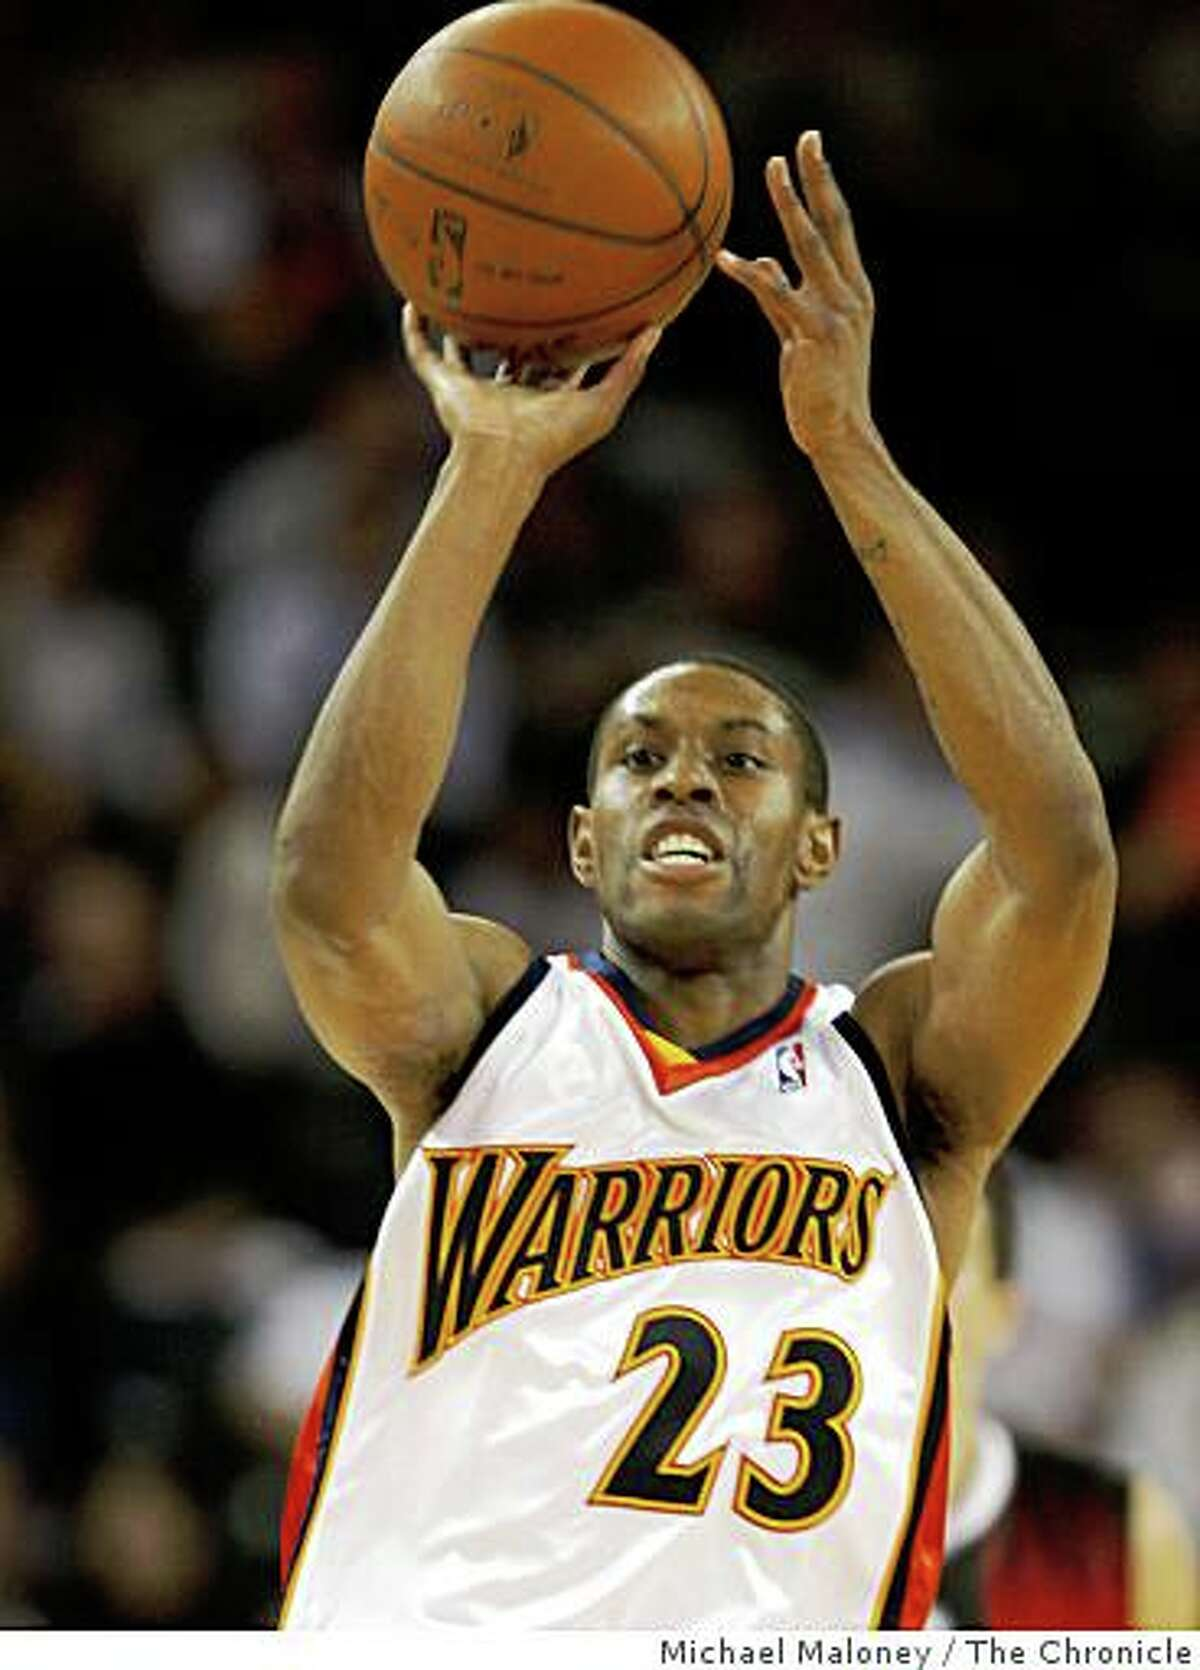 Golden State Warriors C.J. Watson (23) shoots in the 3rd period.The Golden State Warriors host the Lithuanian team, Lietuvos Rytas in an exhibition NBA game at Oracle Arena in Oakland, Calif., on October 21, 2008..